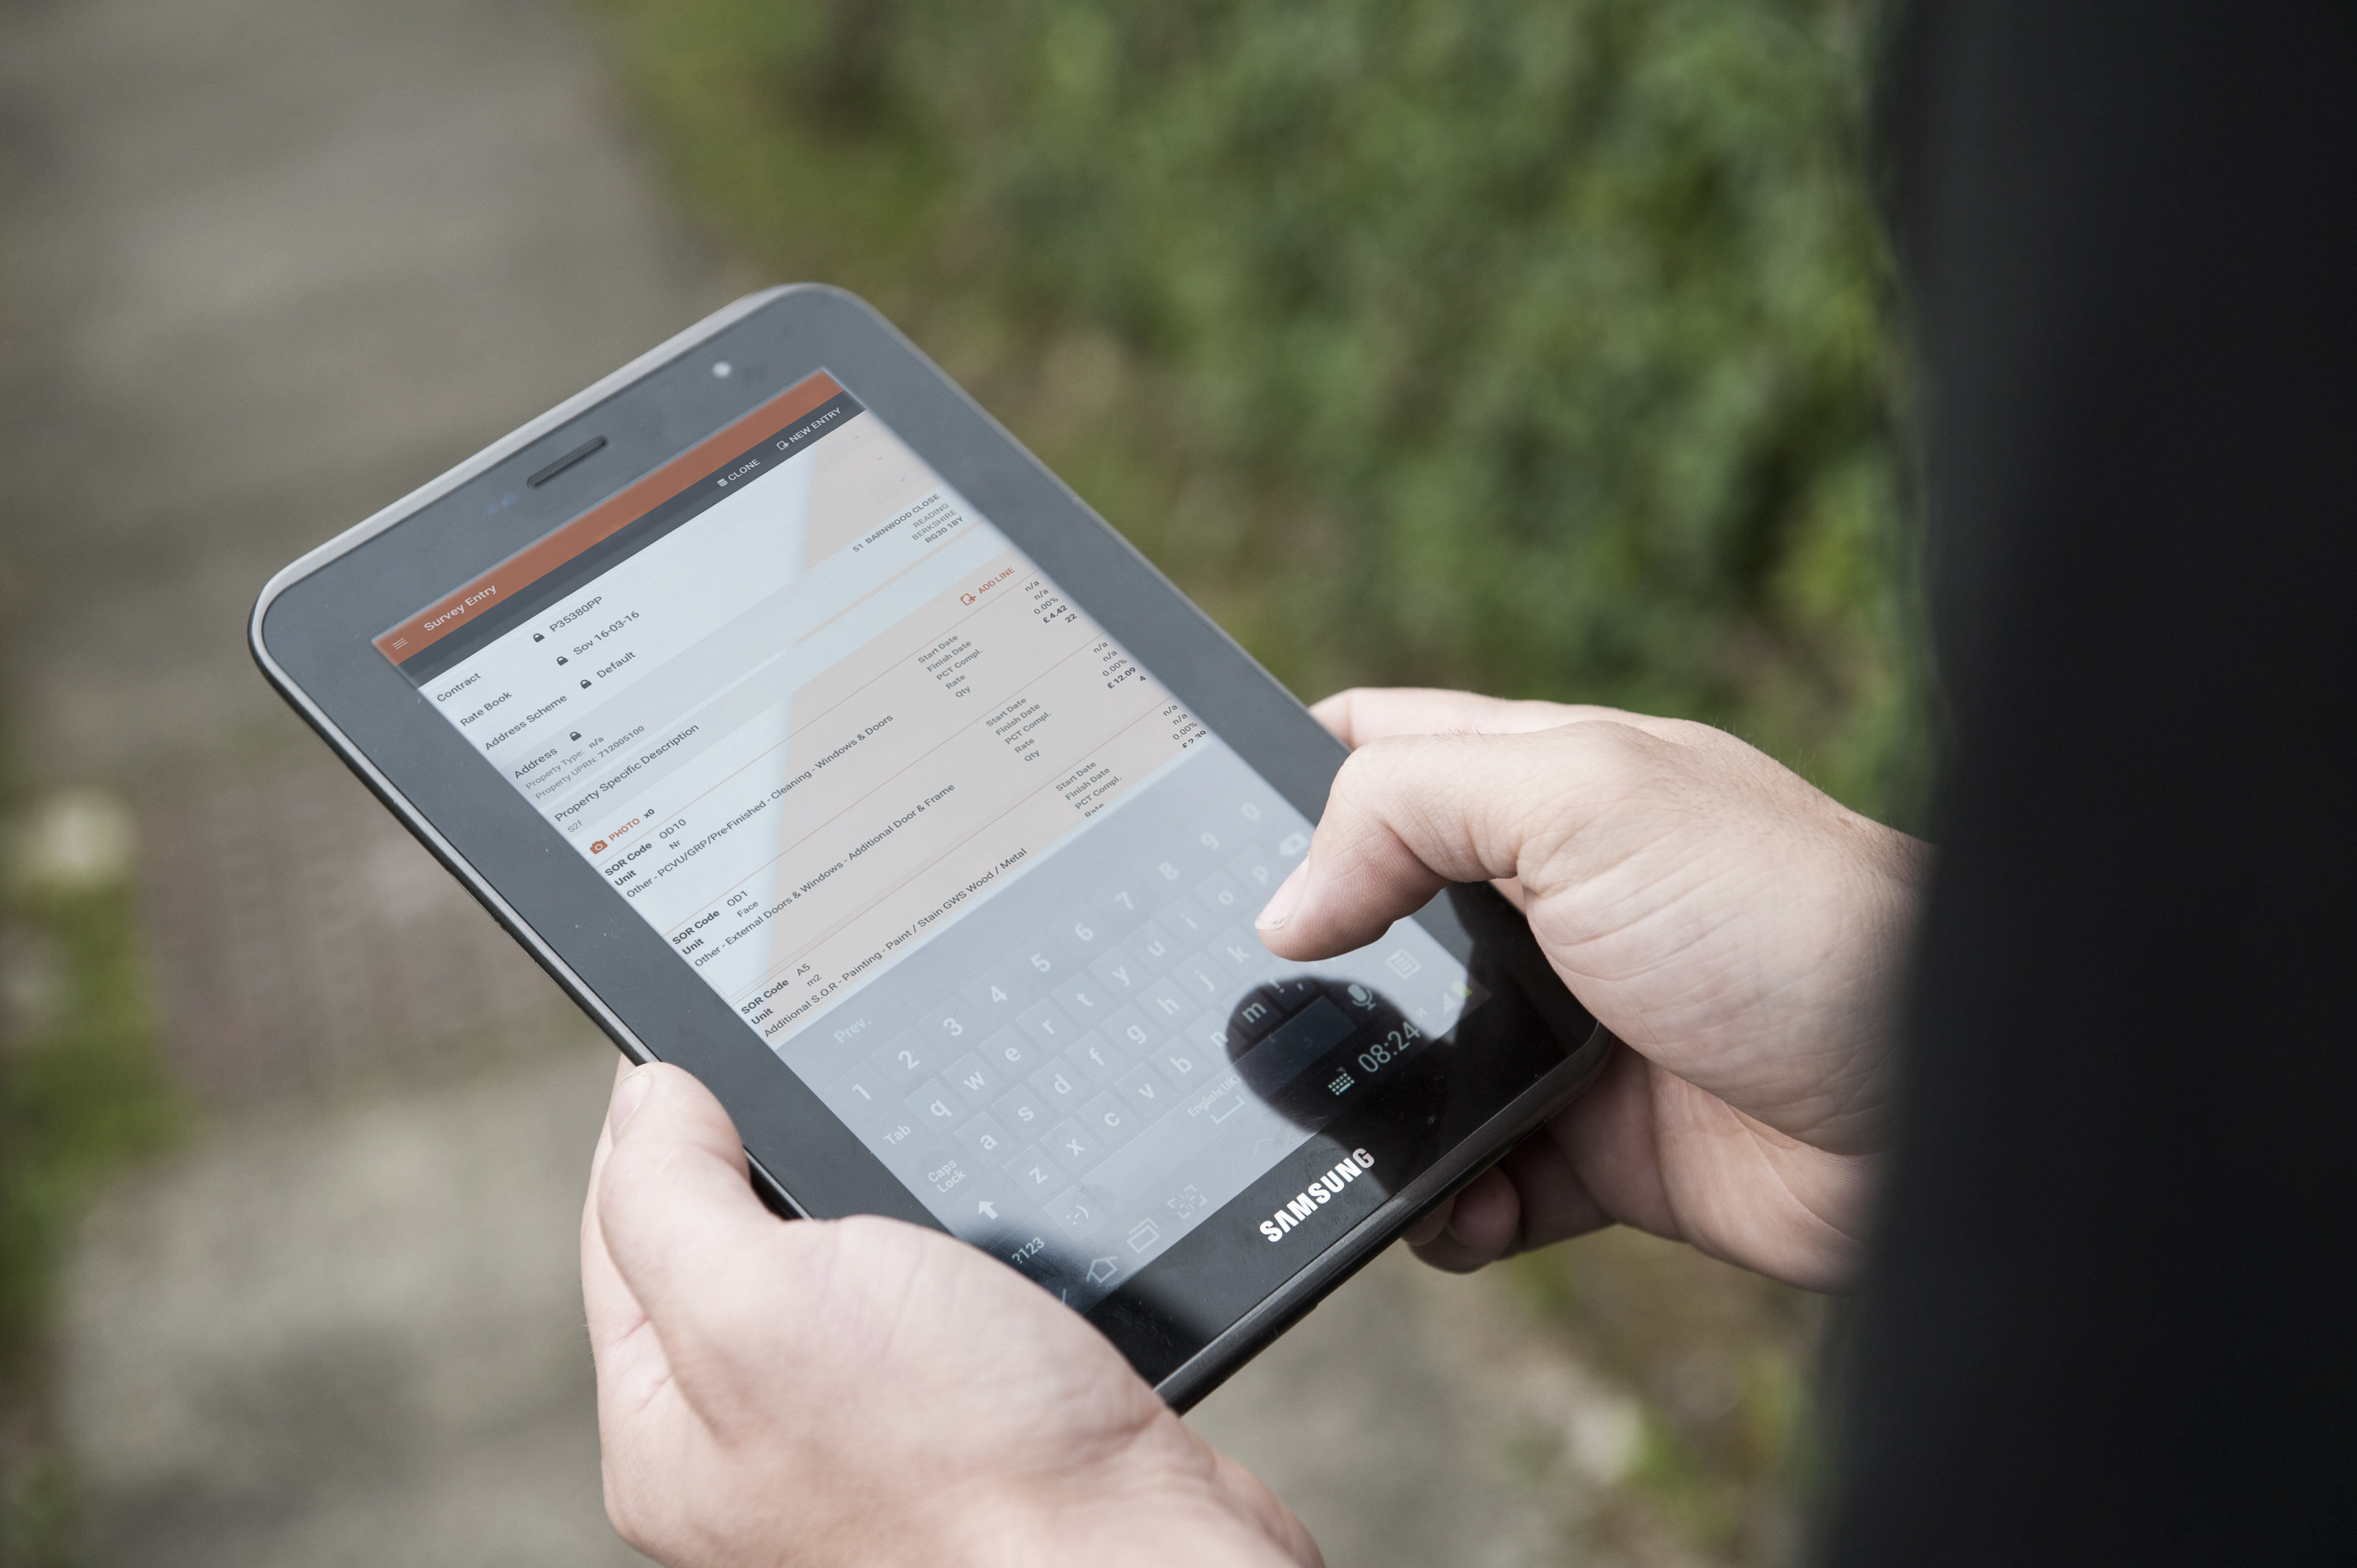 Novus increases efficiency with two new apps